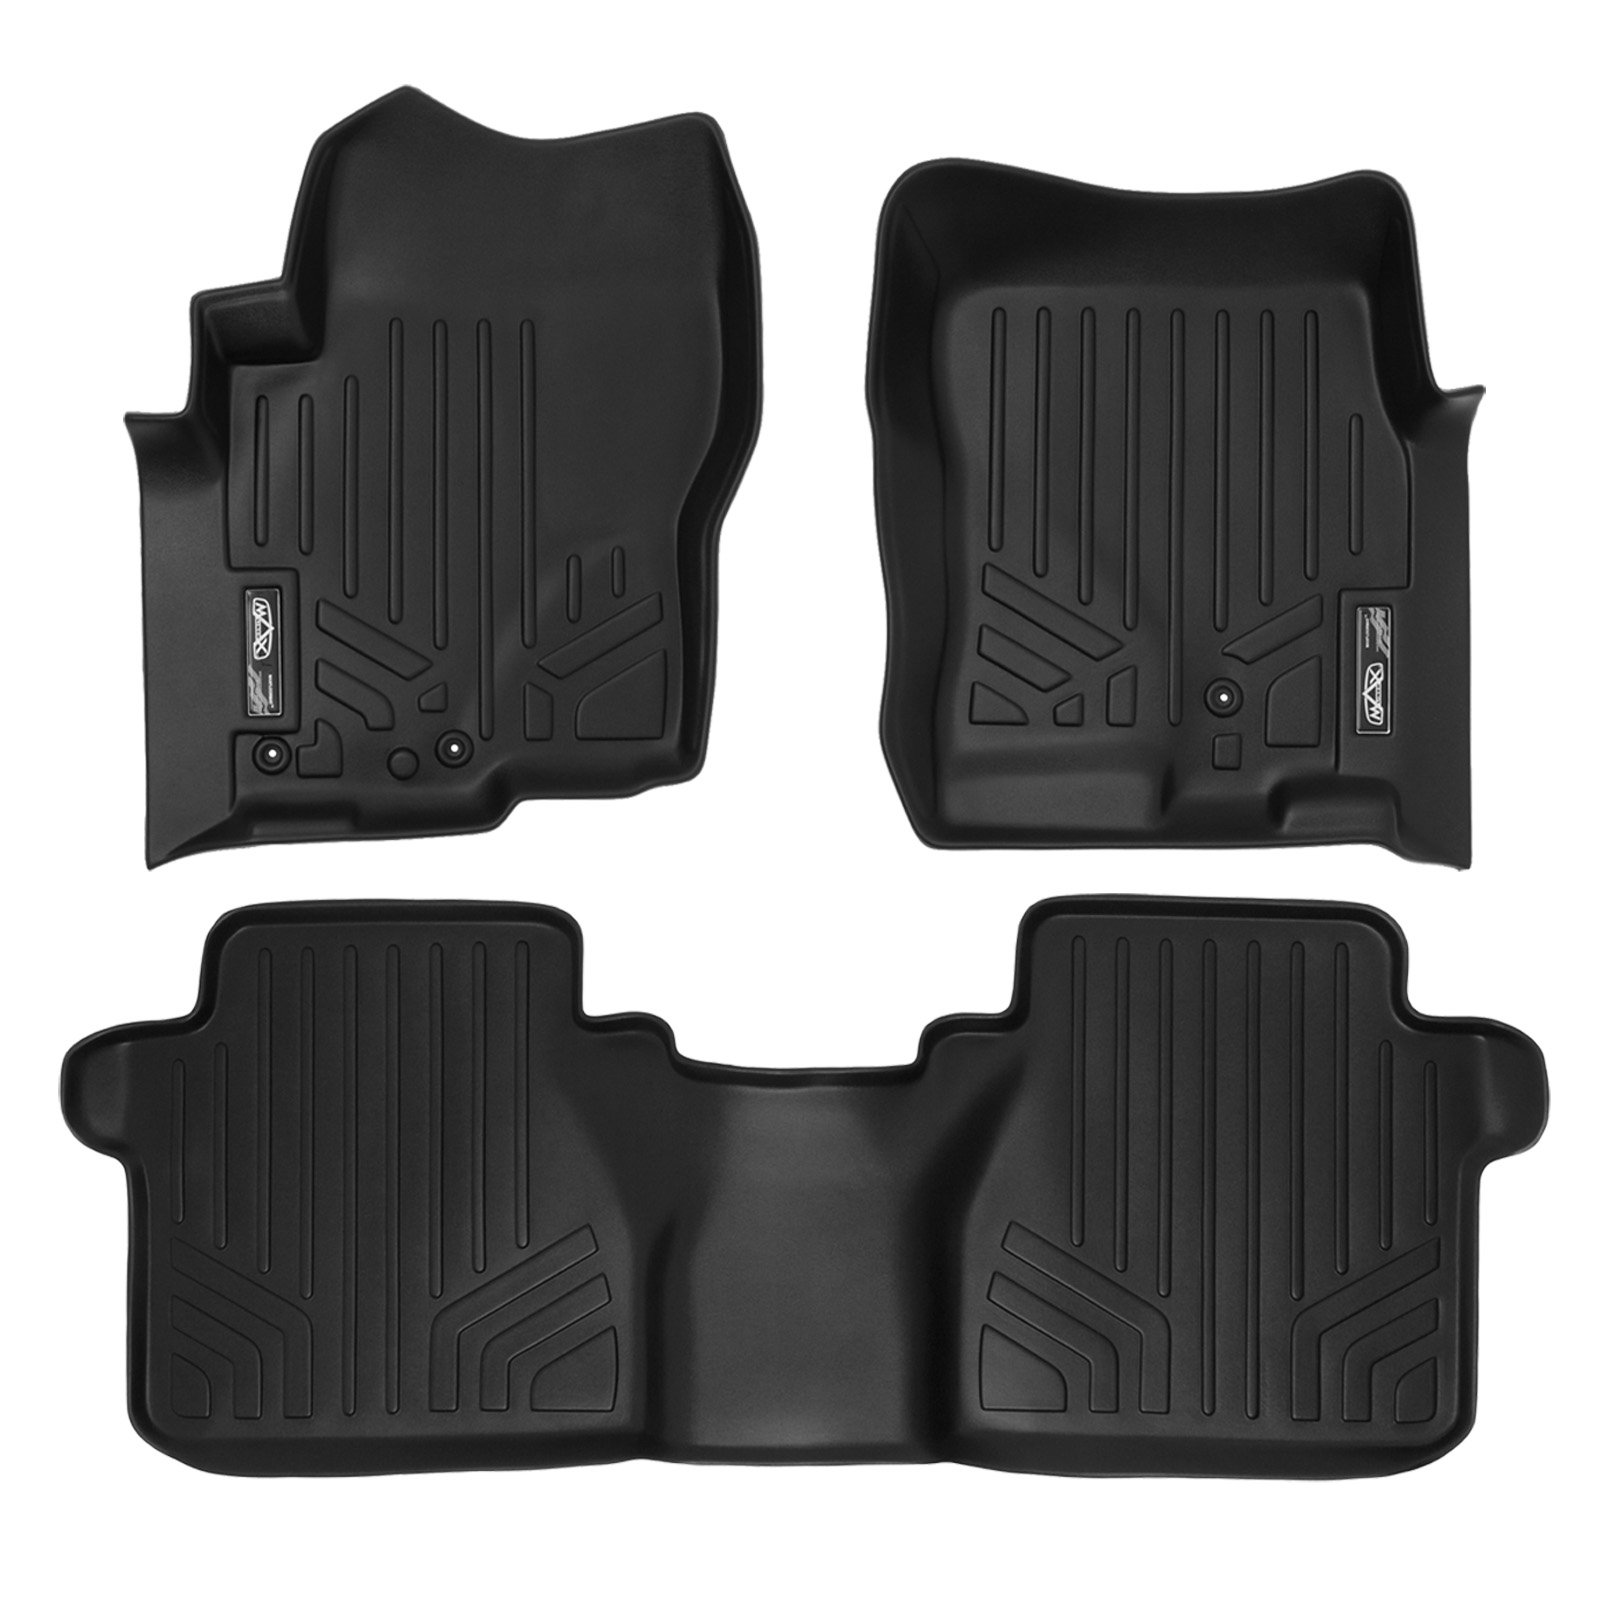 MAX LINER A0121/B0121 Custom Mats 2 Row Liner Set Black for 2008-2019 Nissan Frontier Crew Cab with Dual Drivers Side Floor Posts